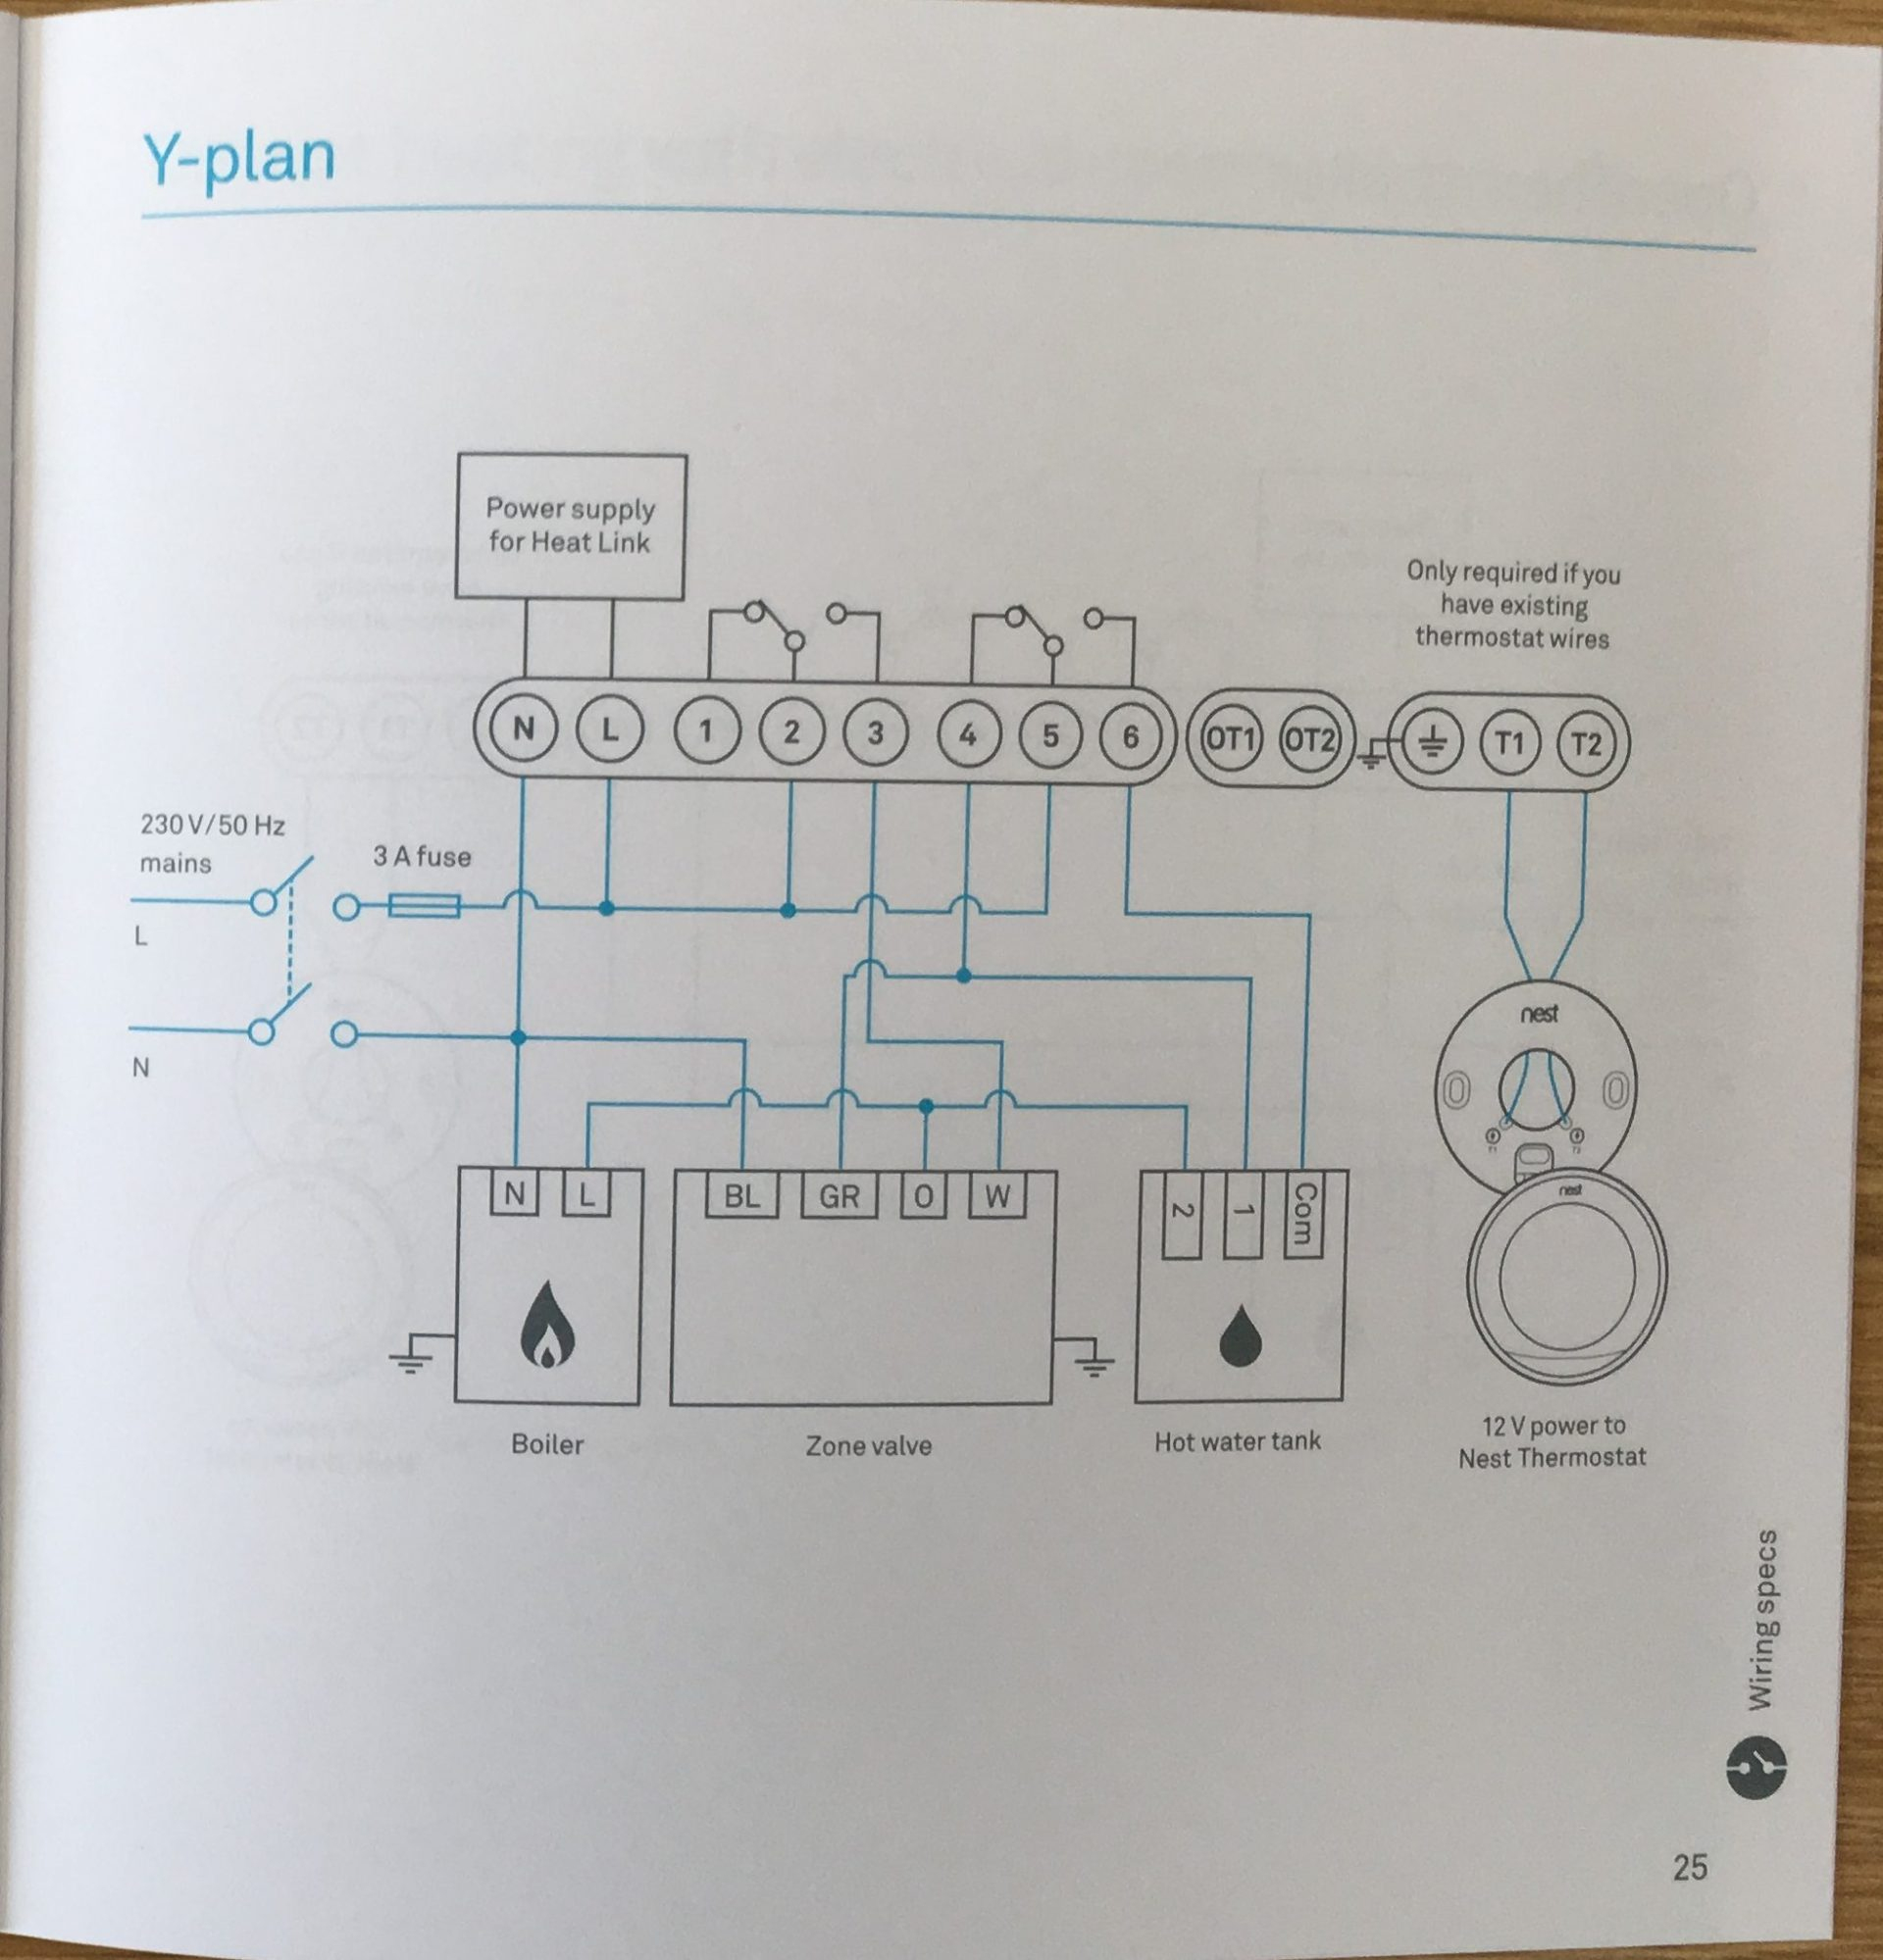 How To Install The Nest Learning Thermostat (3Rd Gen) In A Y-Plan - Nest Generation 3 Wiring Diagram